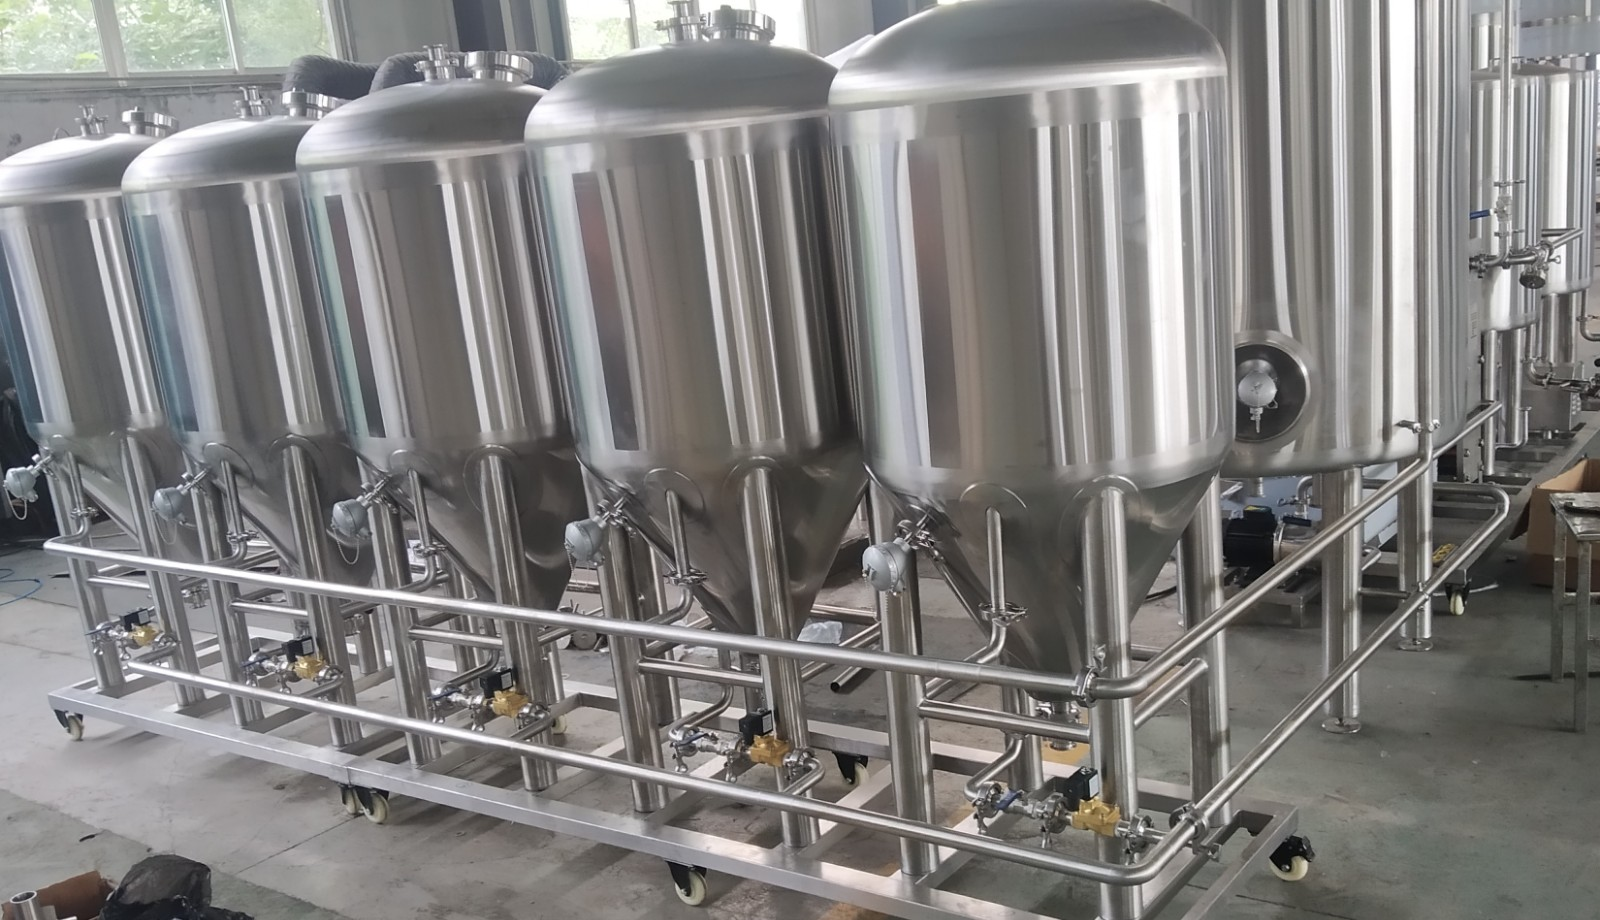 100 beer brewing fermentation tanks.jpg